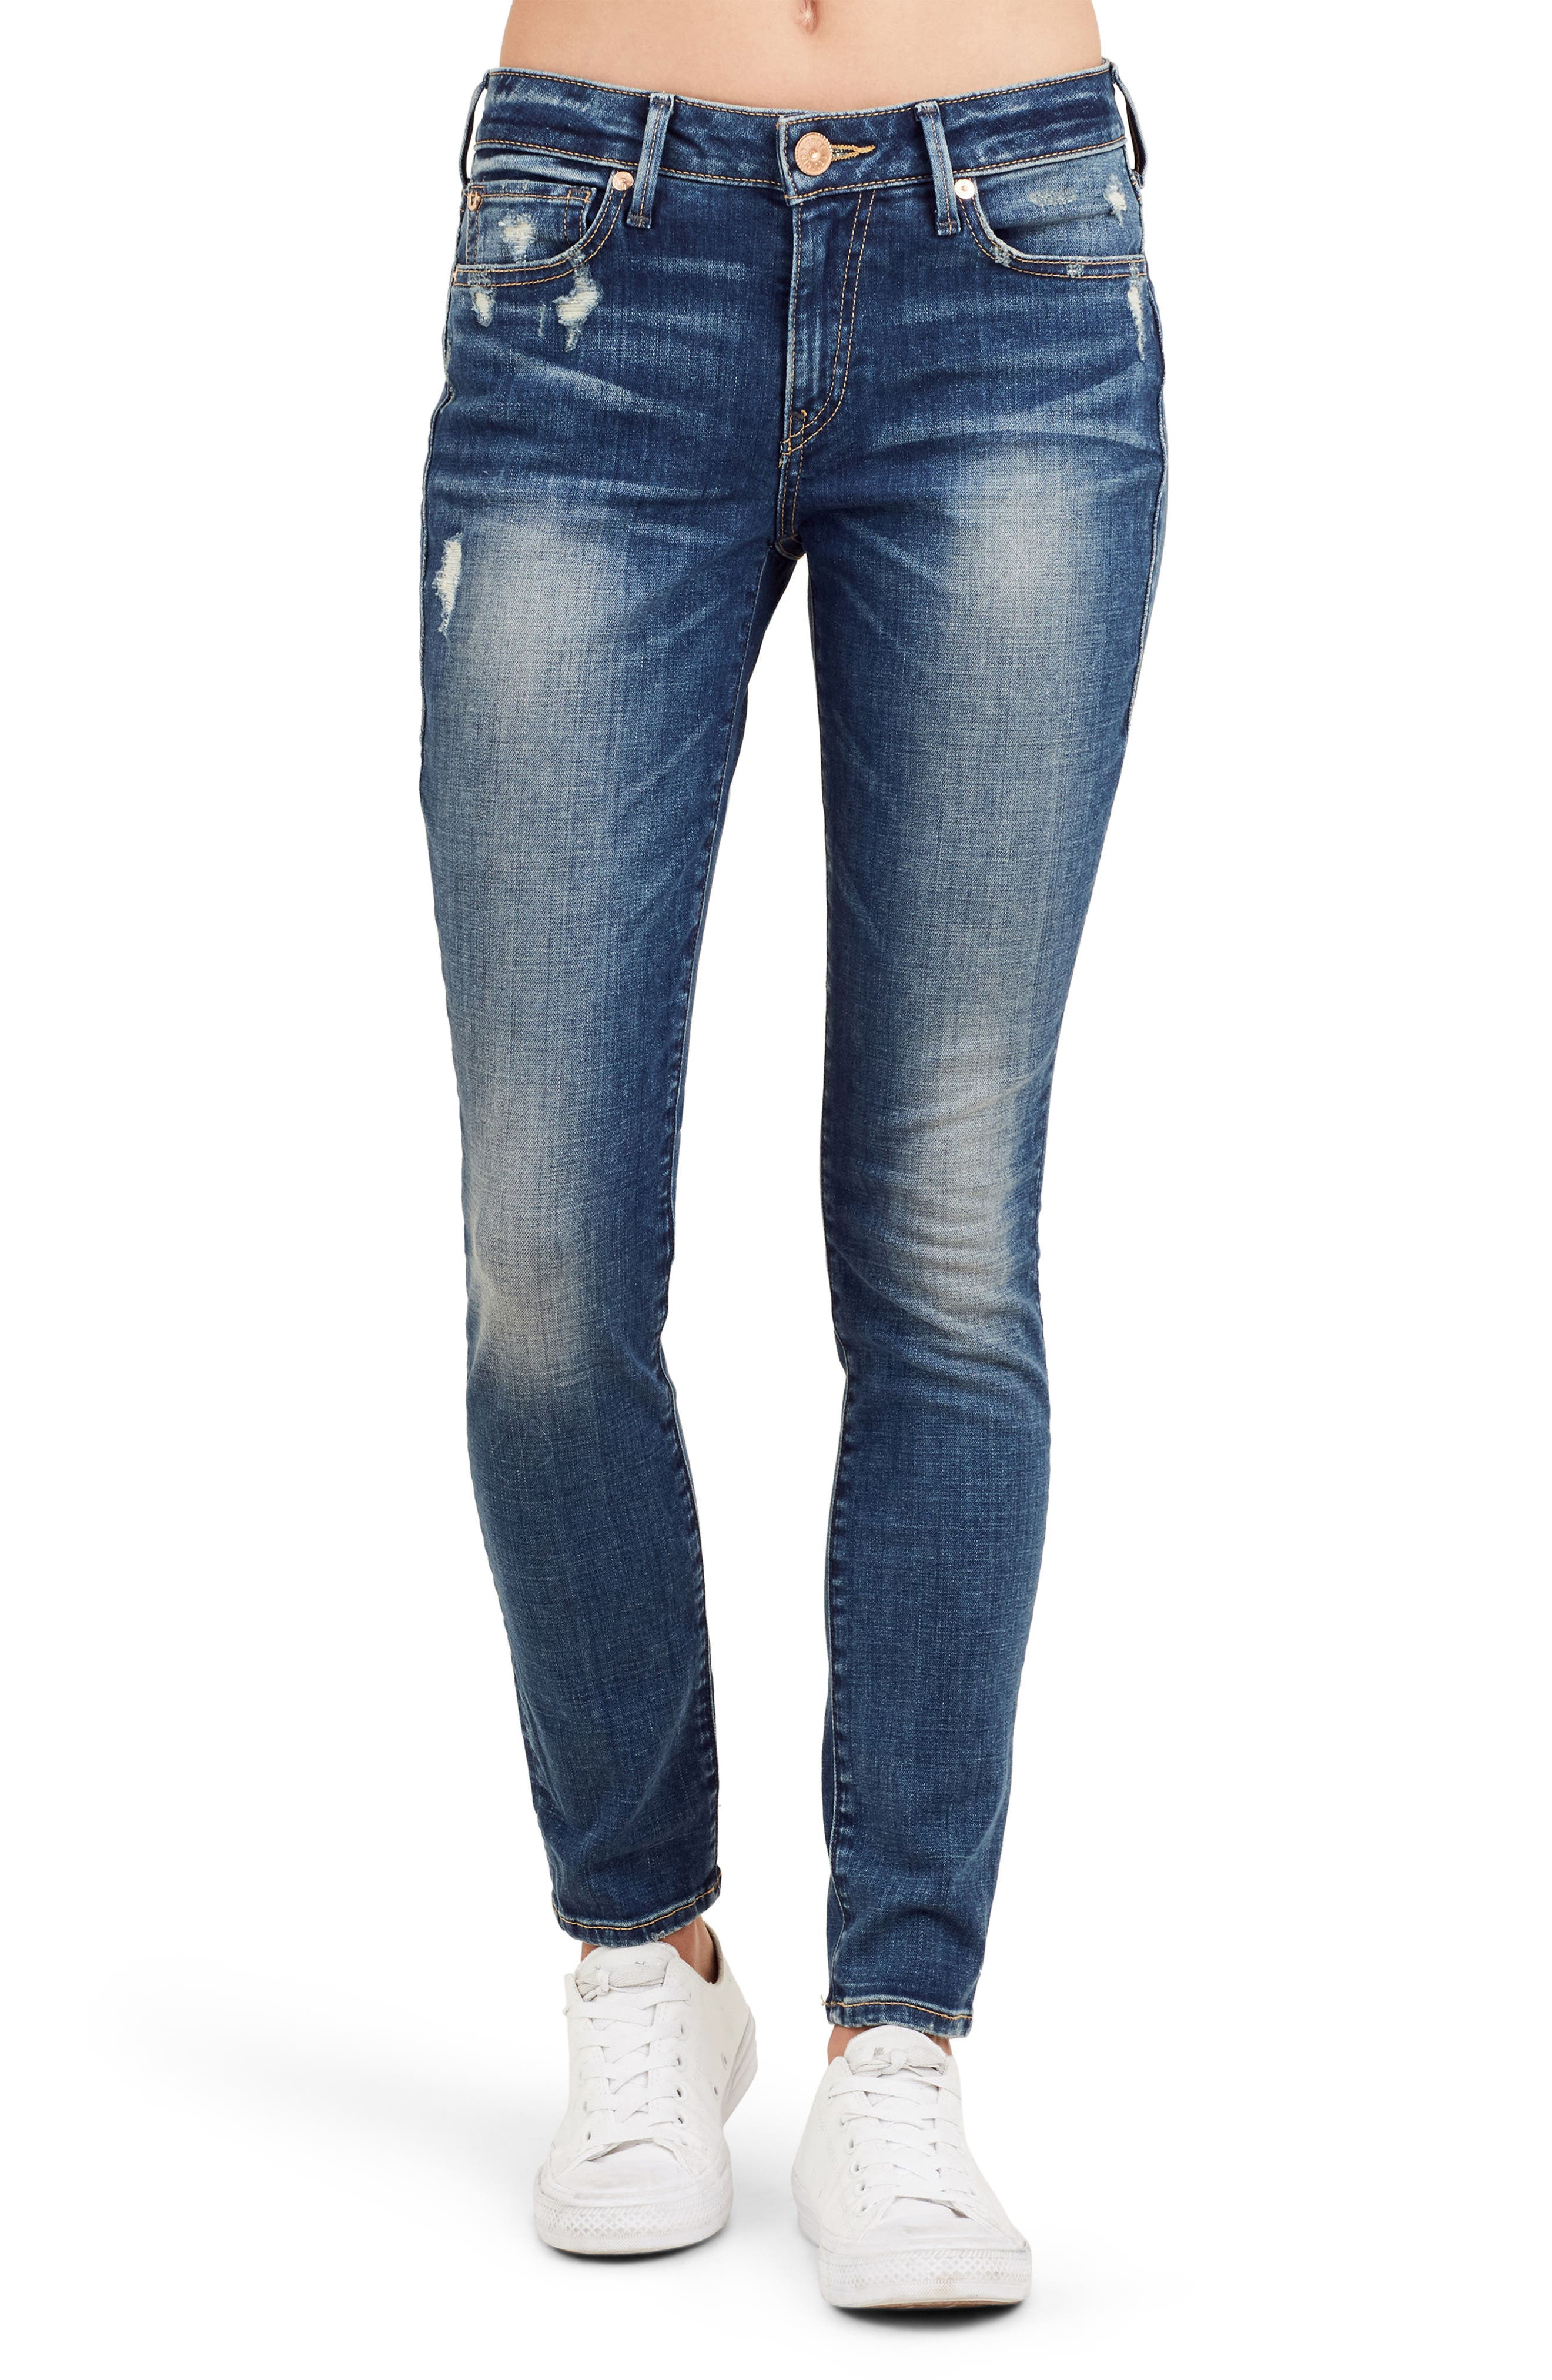 Alternate Image 1 Selected - True Religion Brand Jeans Jennie Curvy Ankle Skinny Jeans (Bell Blues)